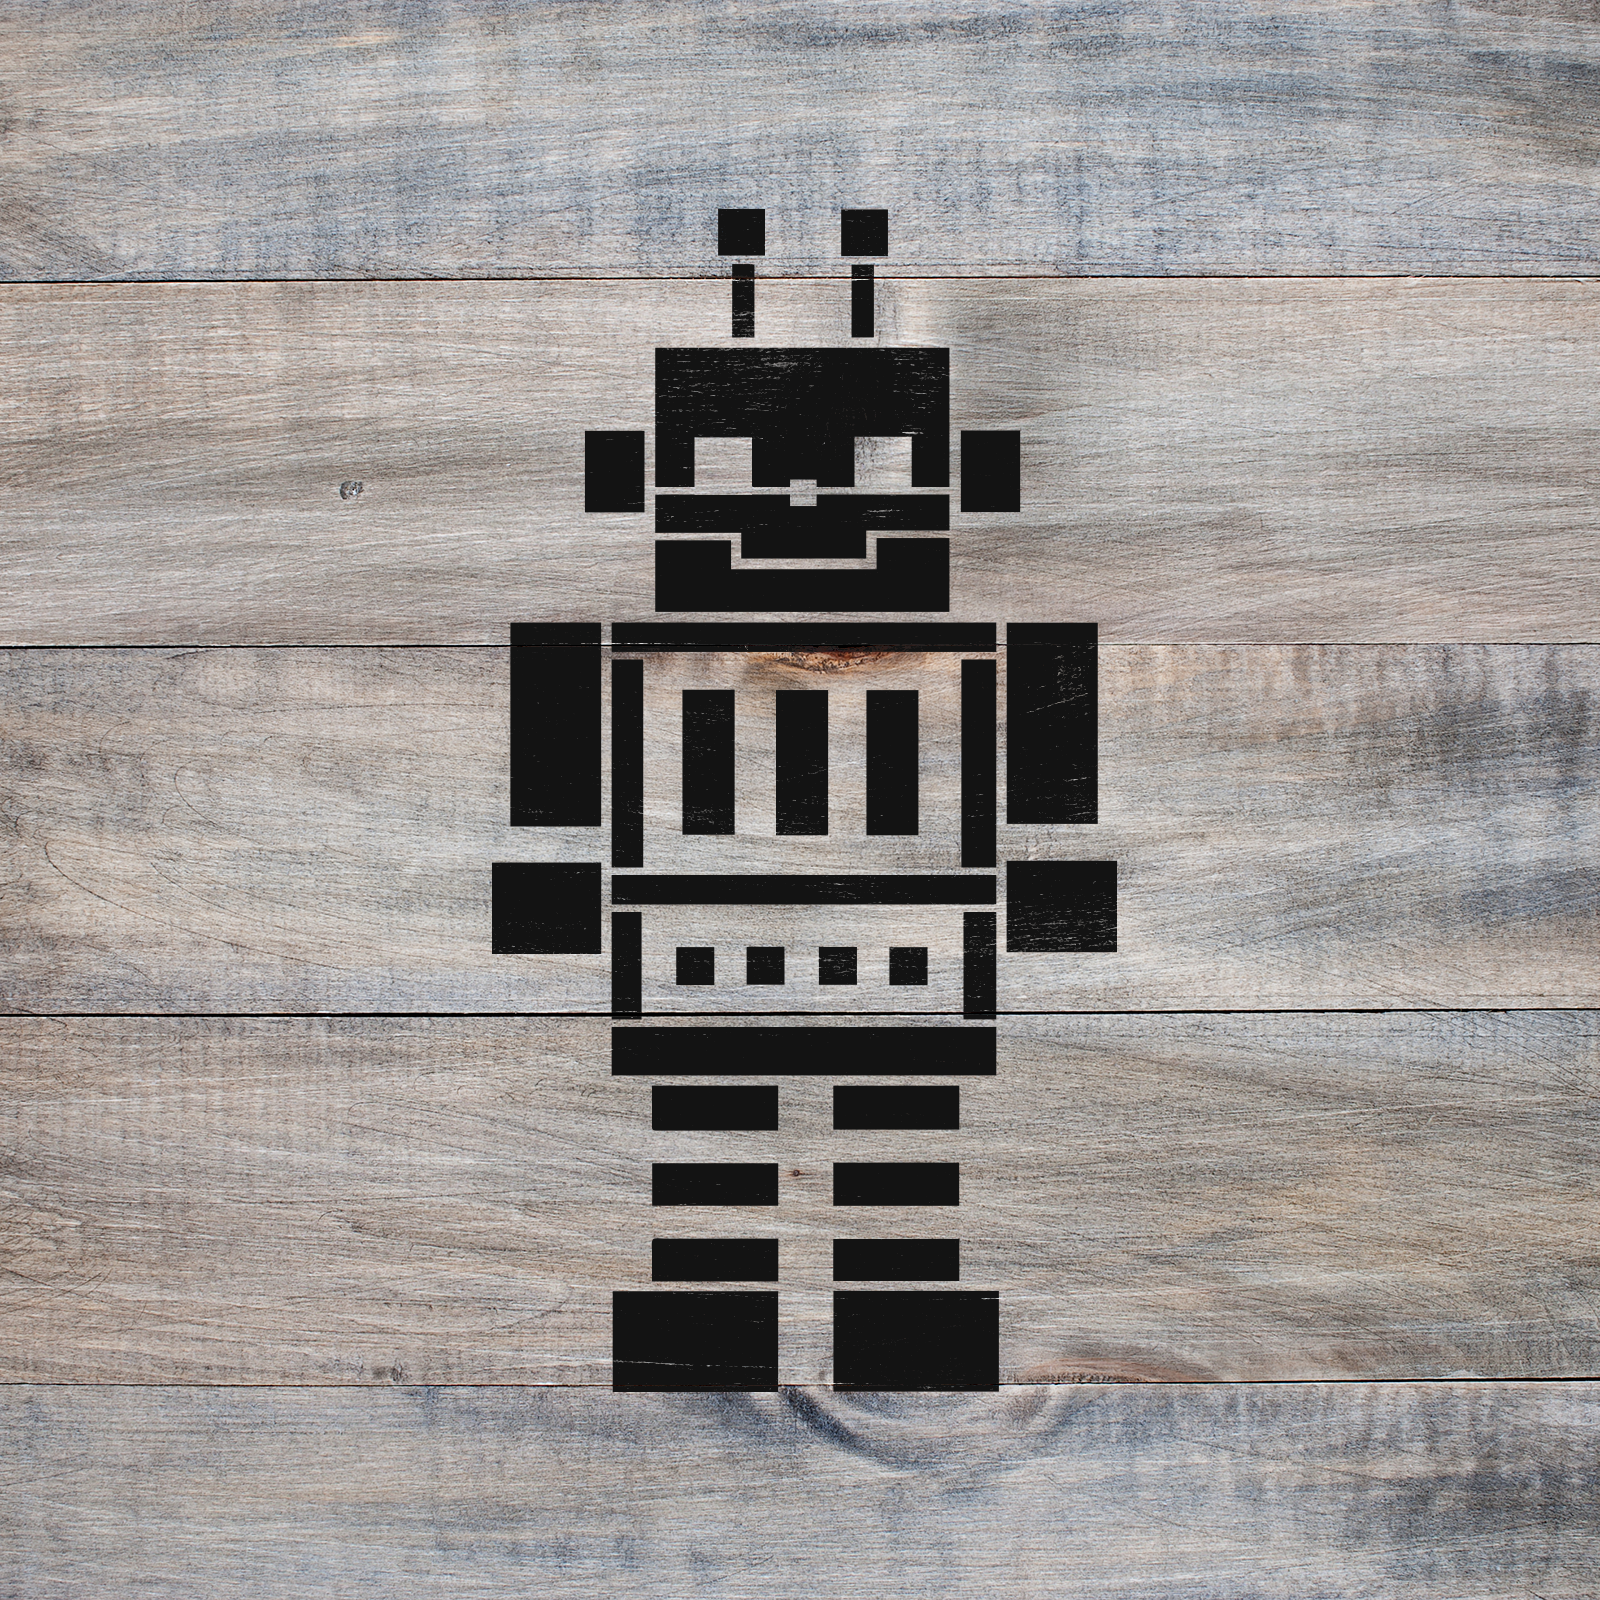 Robot Stencil - Reusable Stencils of Robot in Multiple Sizes